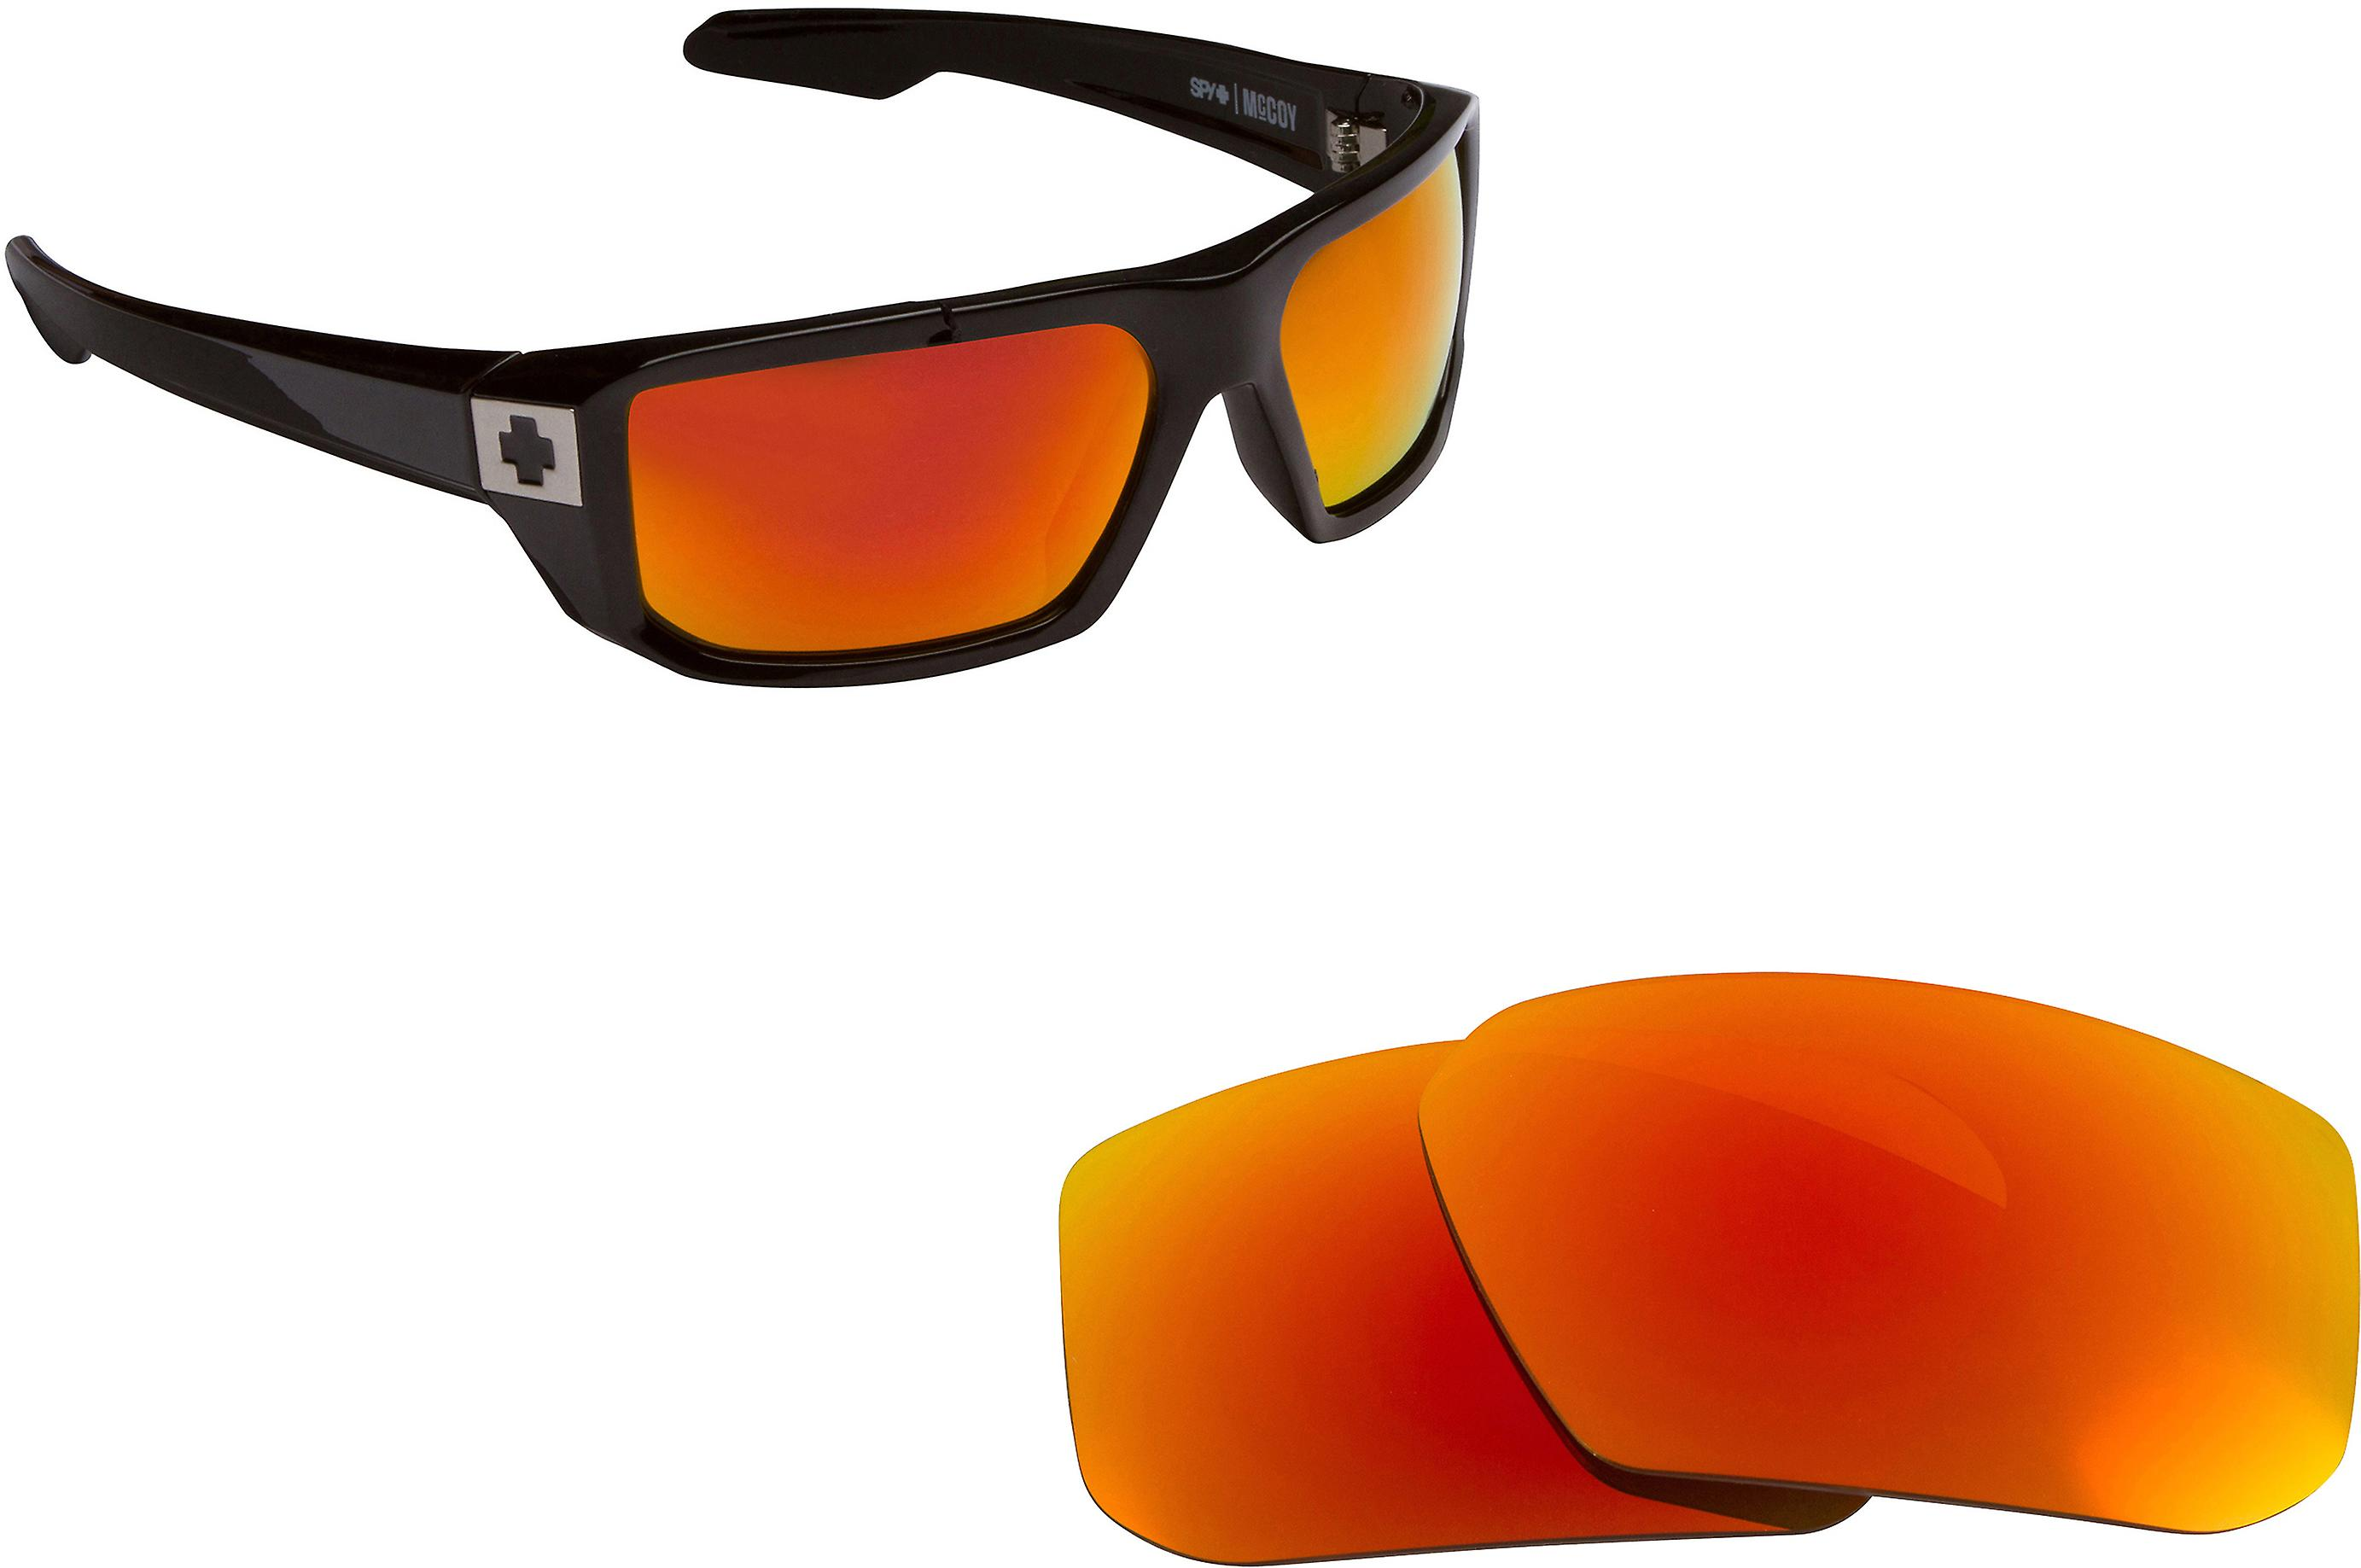 c4366210b7 McCOY Replacement Lenses Polarized Red Mirror by SEEK fits SPY OPTICS  Sunglasses